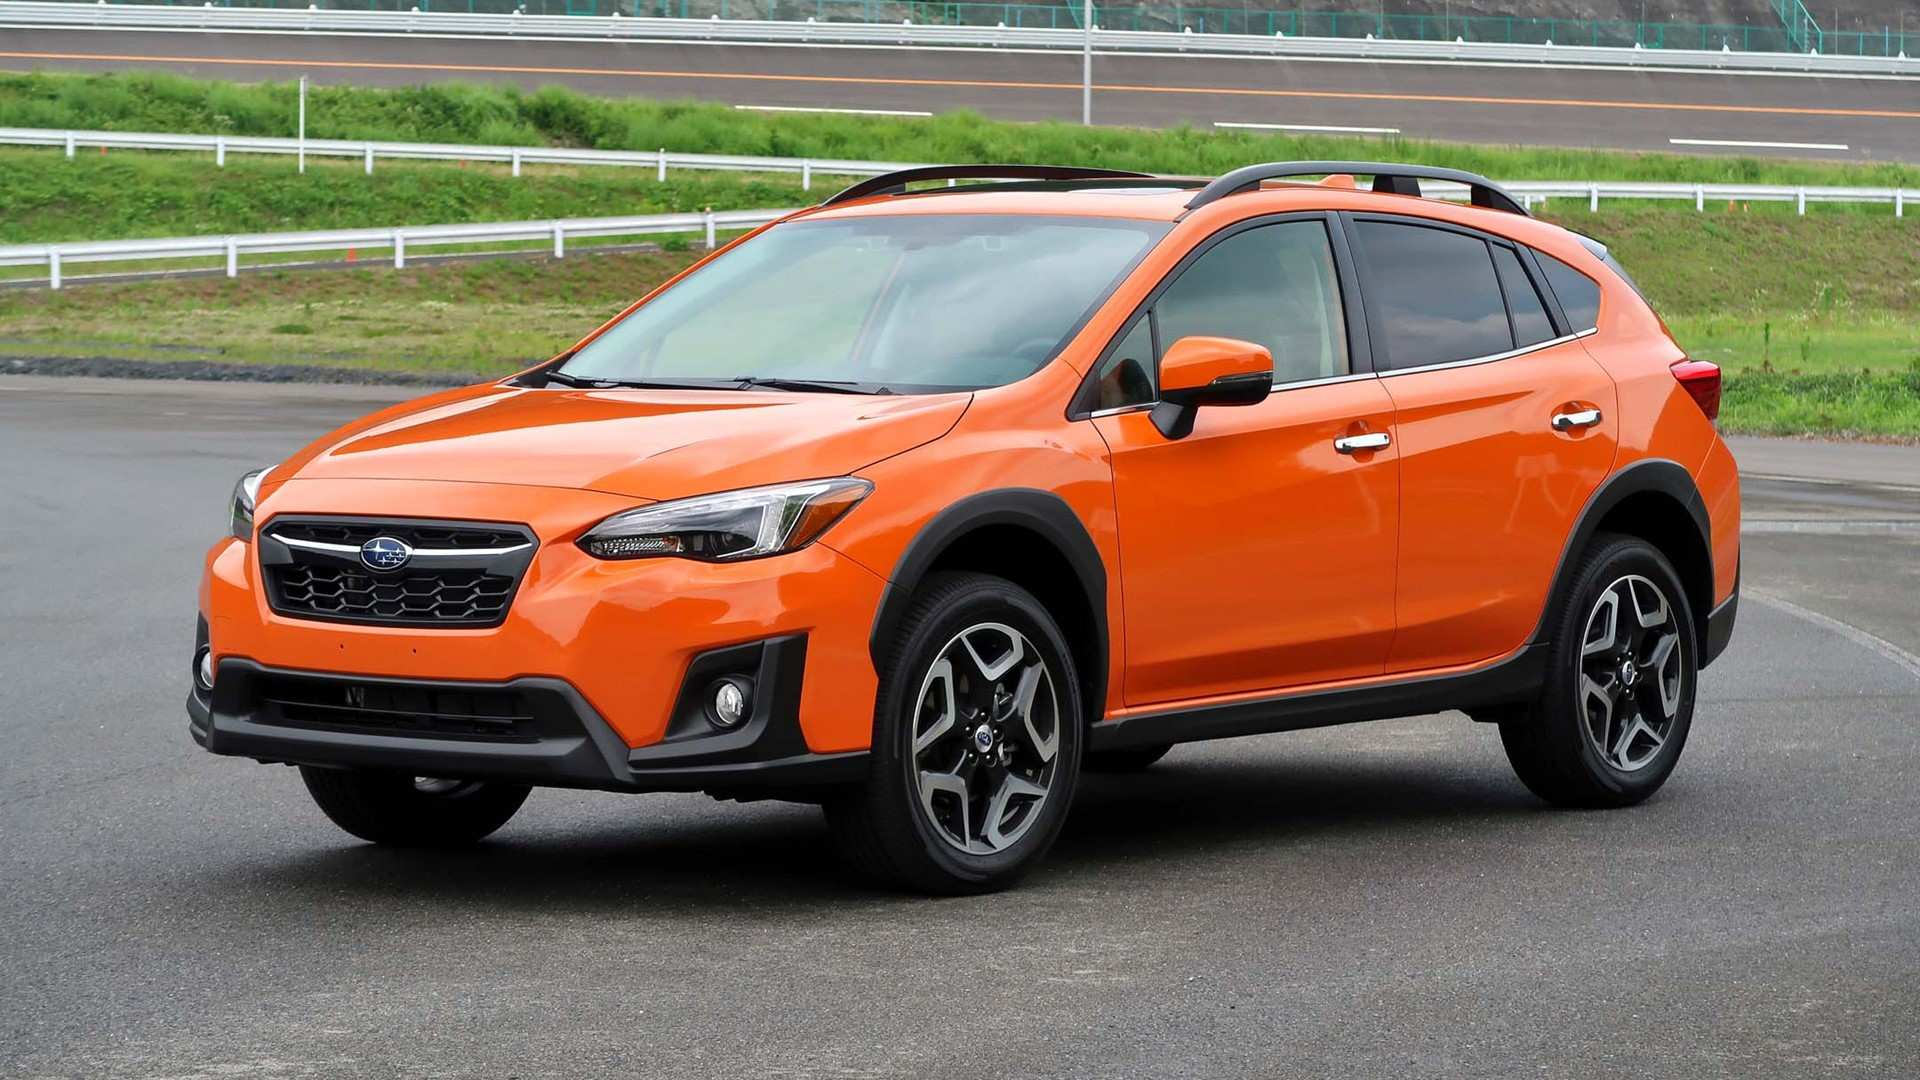 74 The Subaru Crosstrek 2020 Canada Redesign and Concept for Subaru Crosstrek 2020 Canada